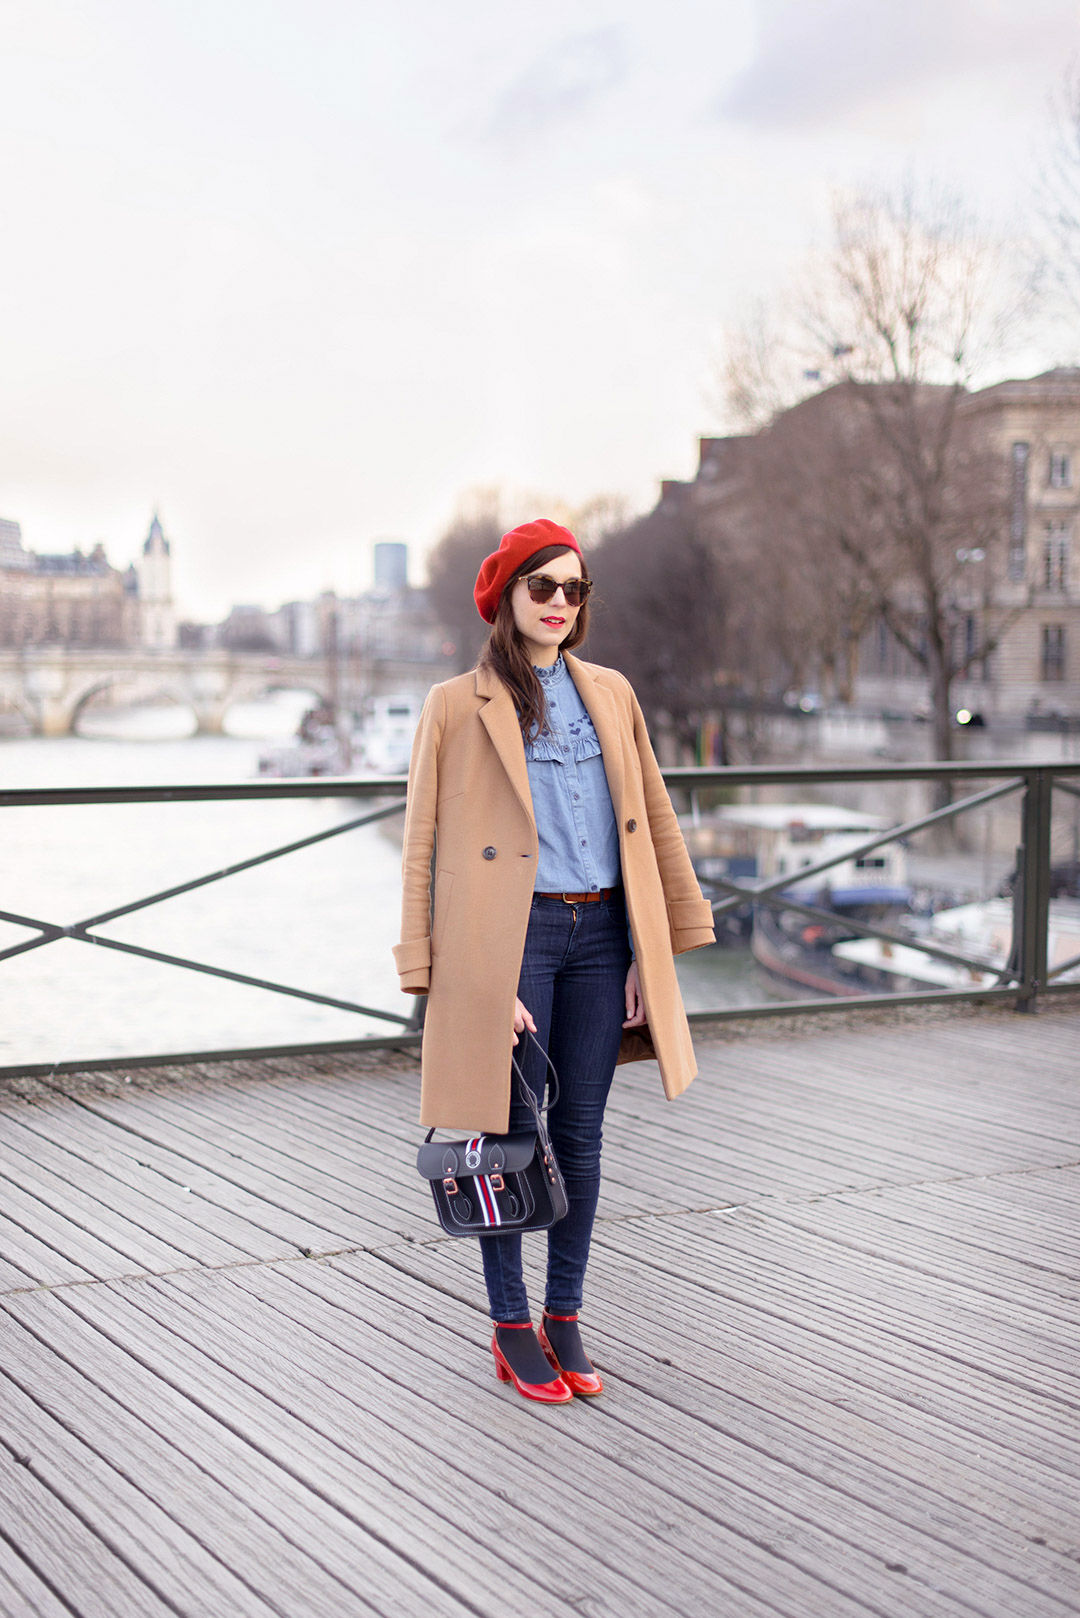 Blog-Mode-And-The-City-Looks-Pont-des-Arts-8 copie